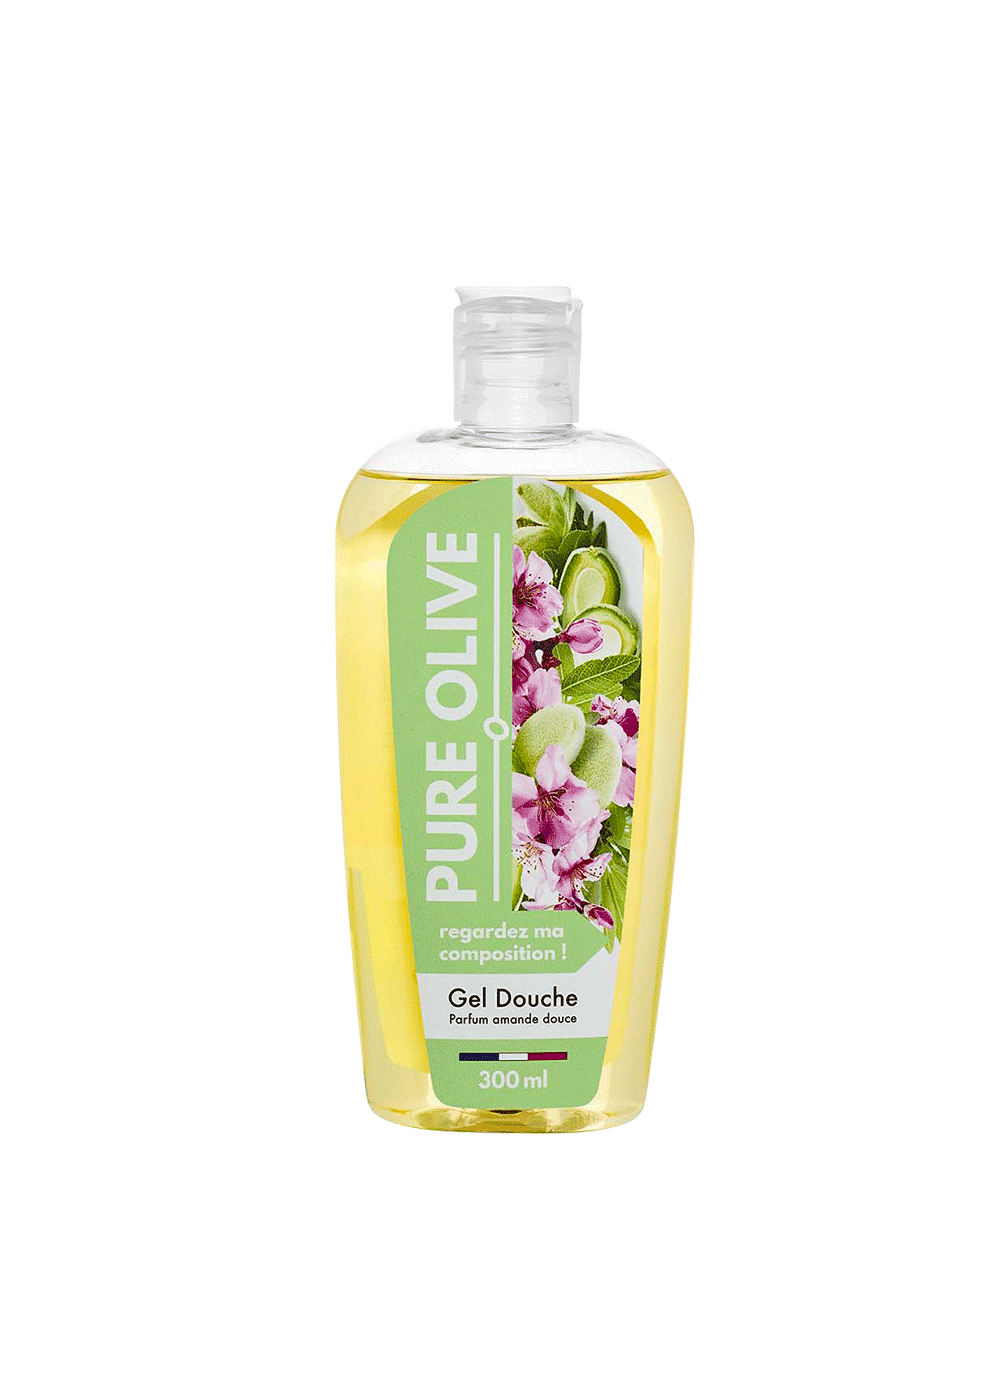 Gel douche Amande Douce, Pure Olive (300 ml)